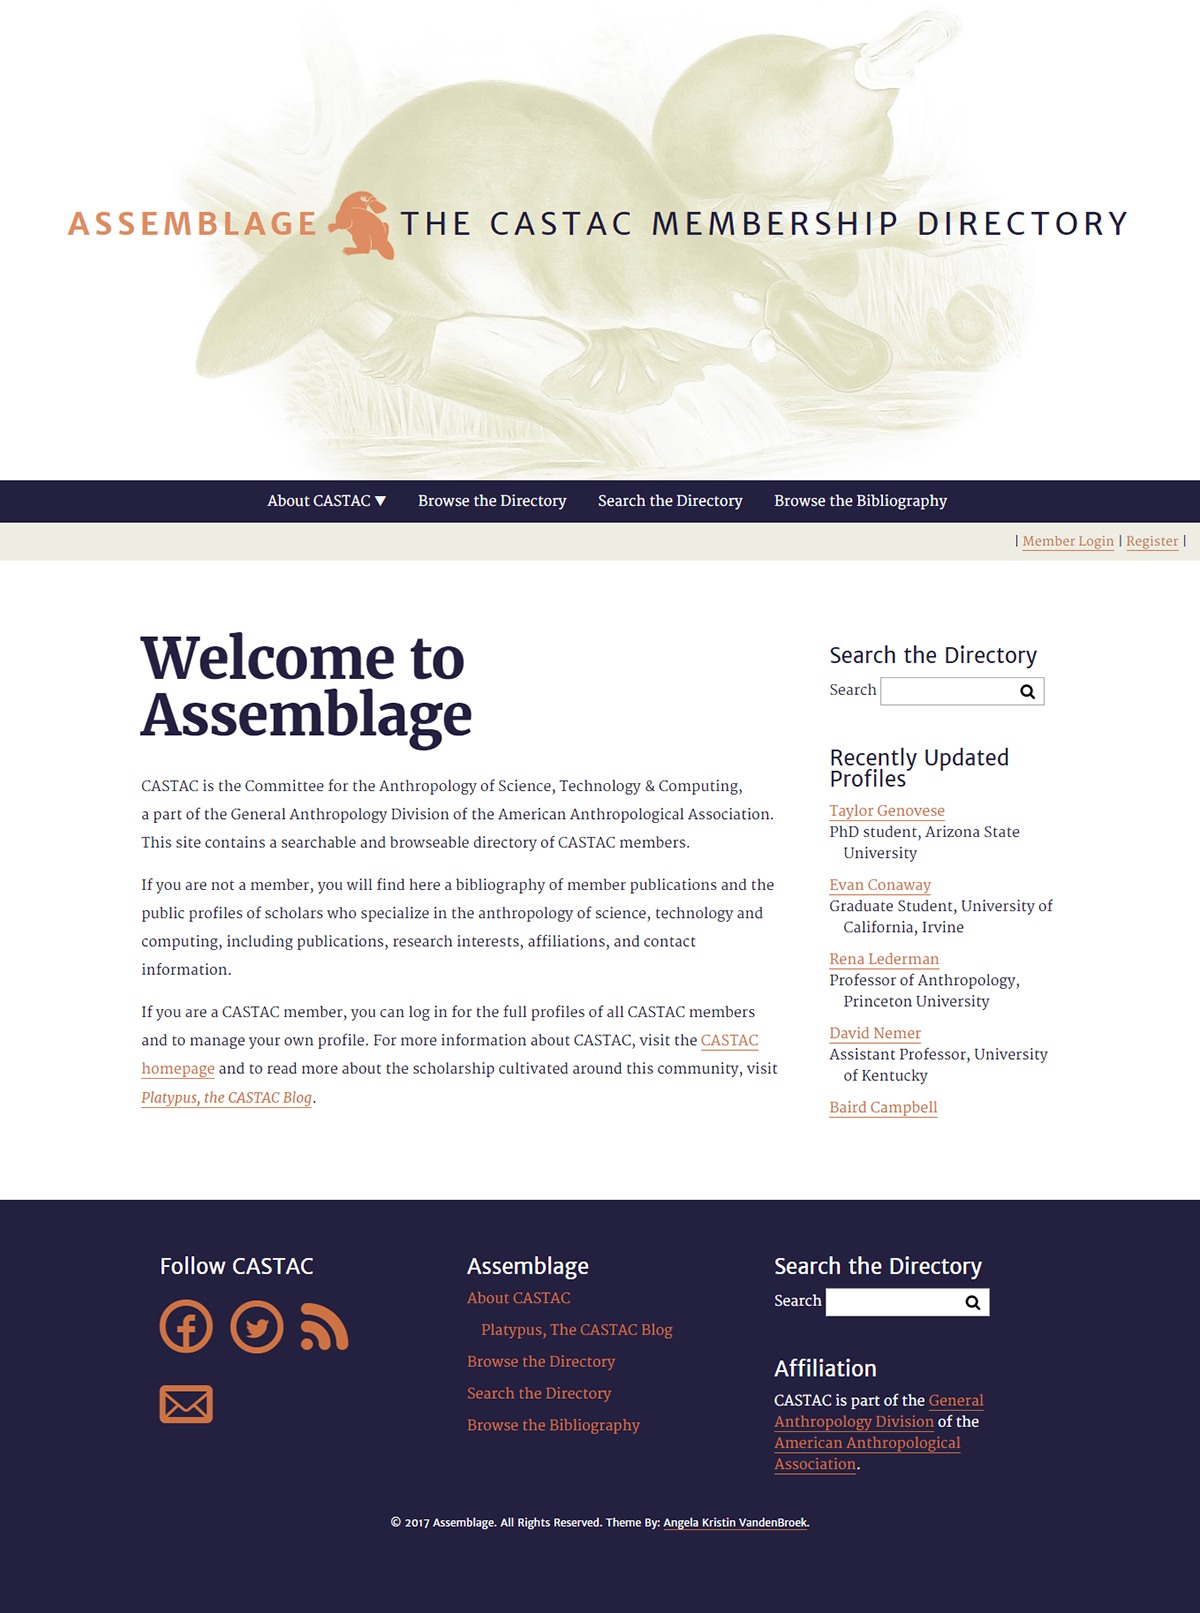 The homepage of Assemblage